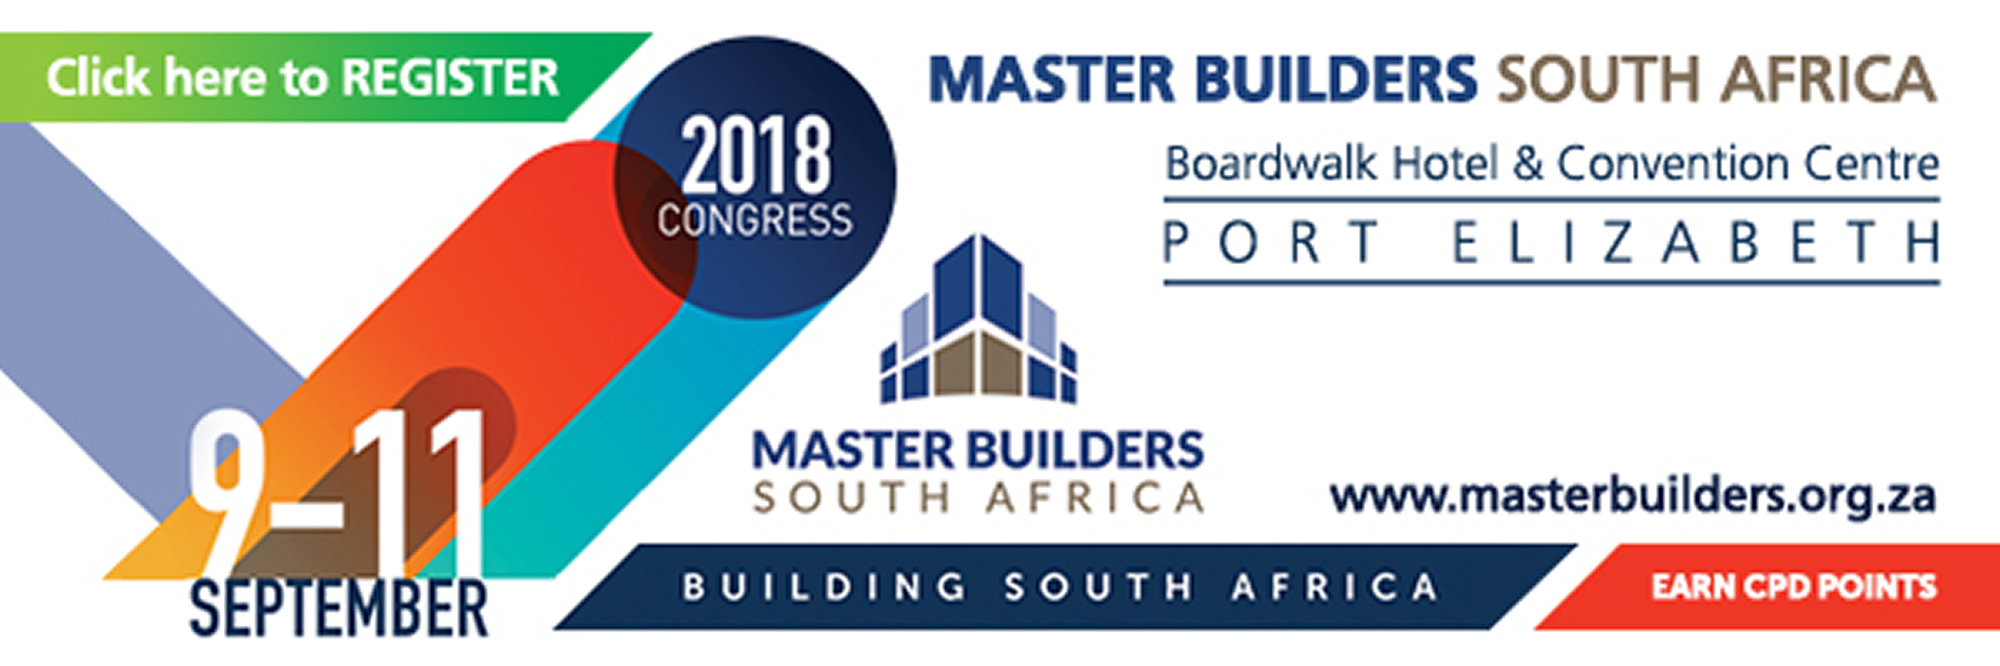 master_builder_congress3